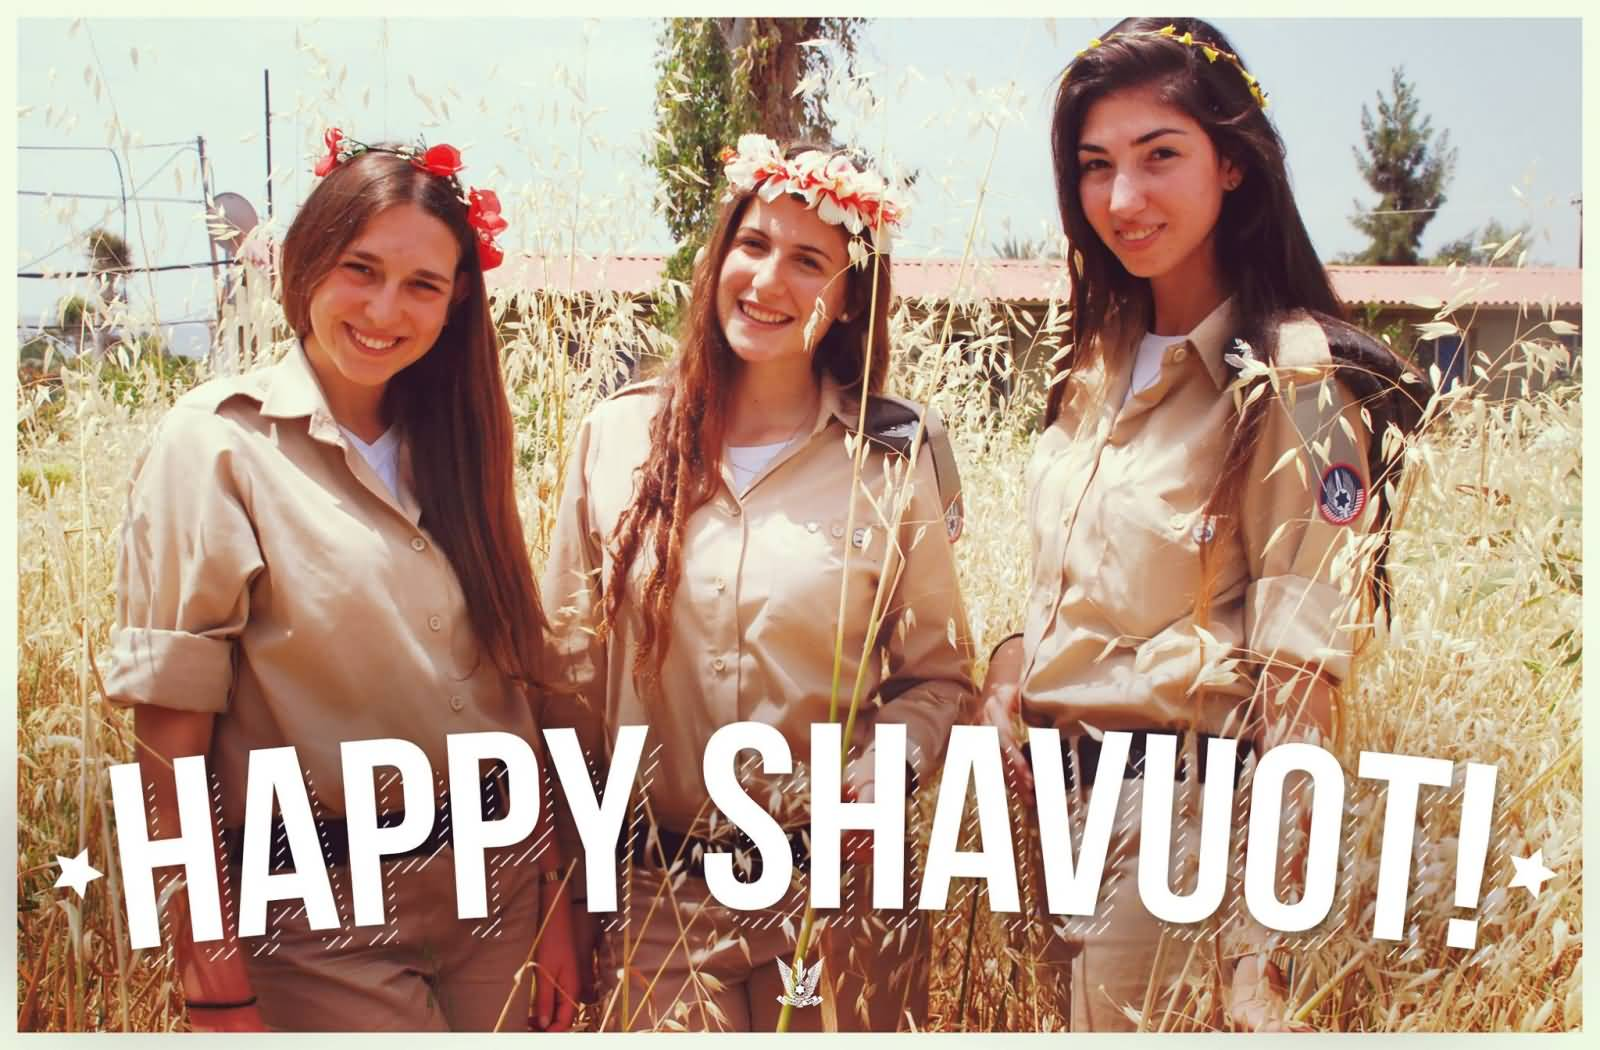 Beautiful Jewish Girls Wishing You Happy Shavuot